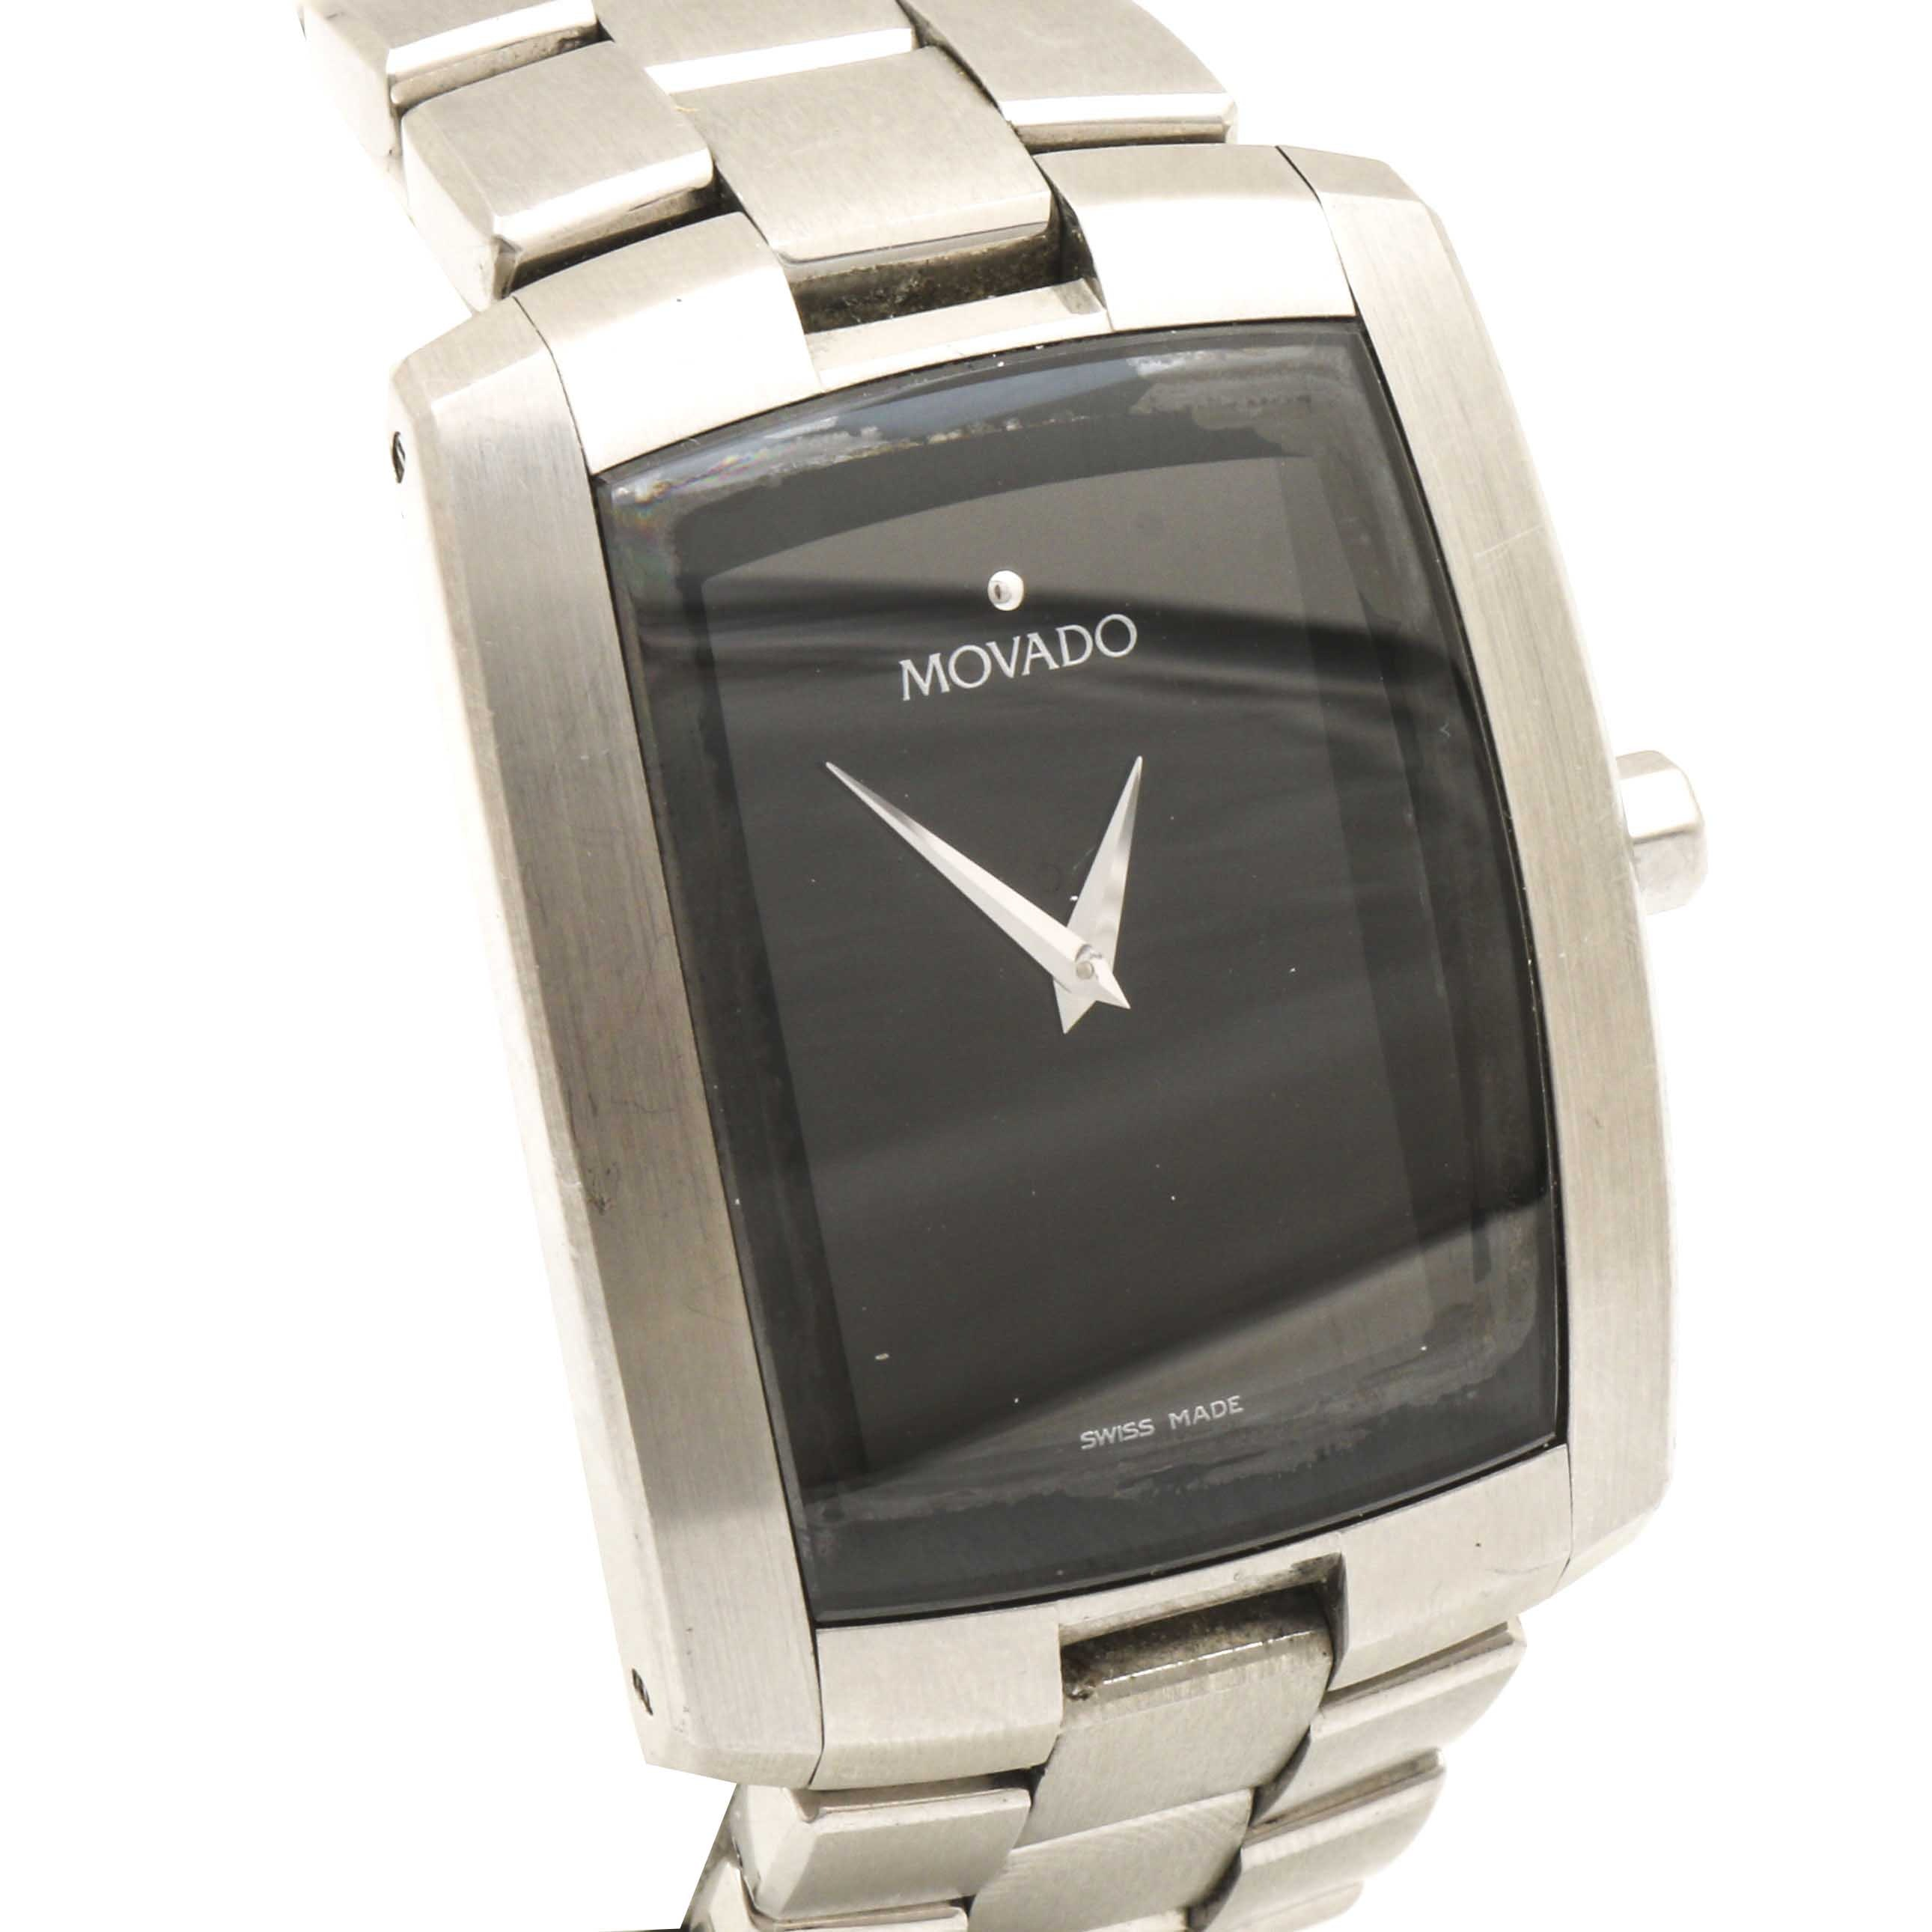 Movado Stainless Steel Swiss Made Wristwatch